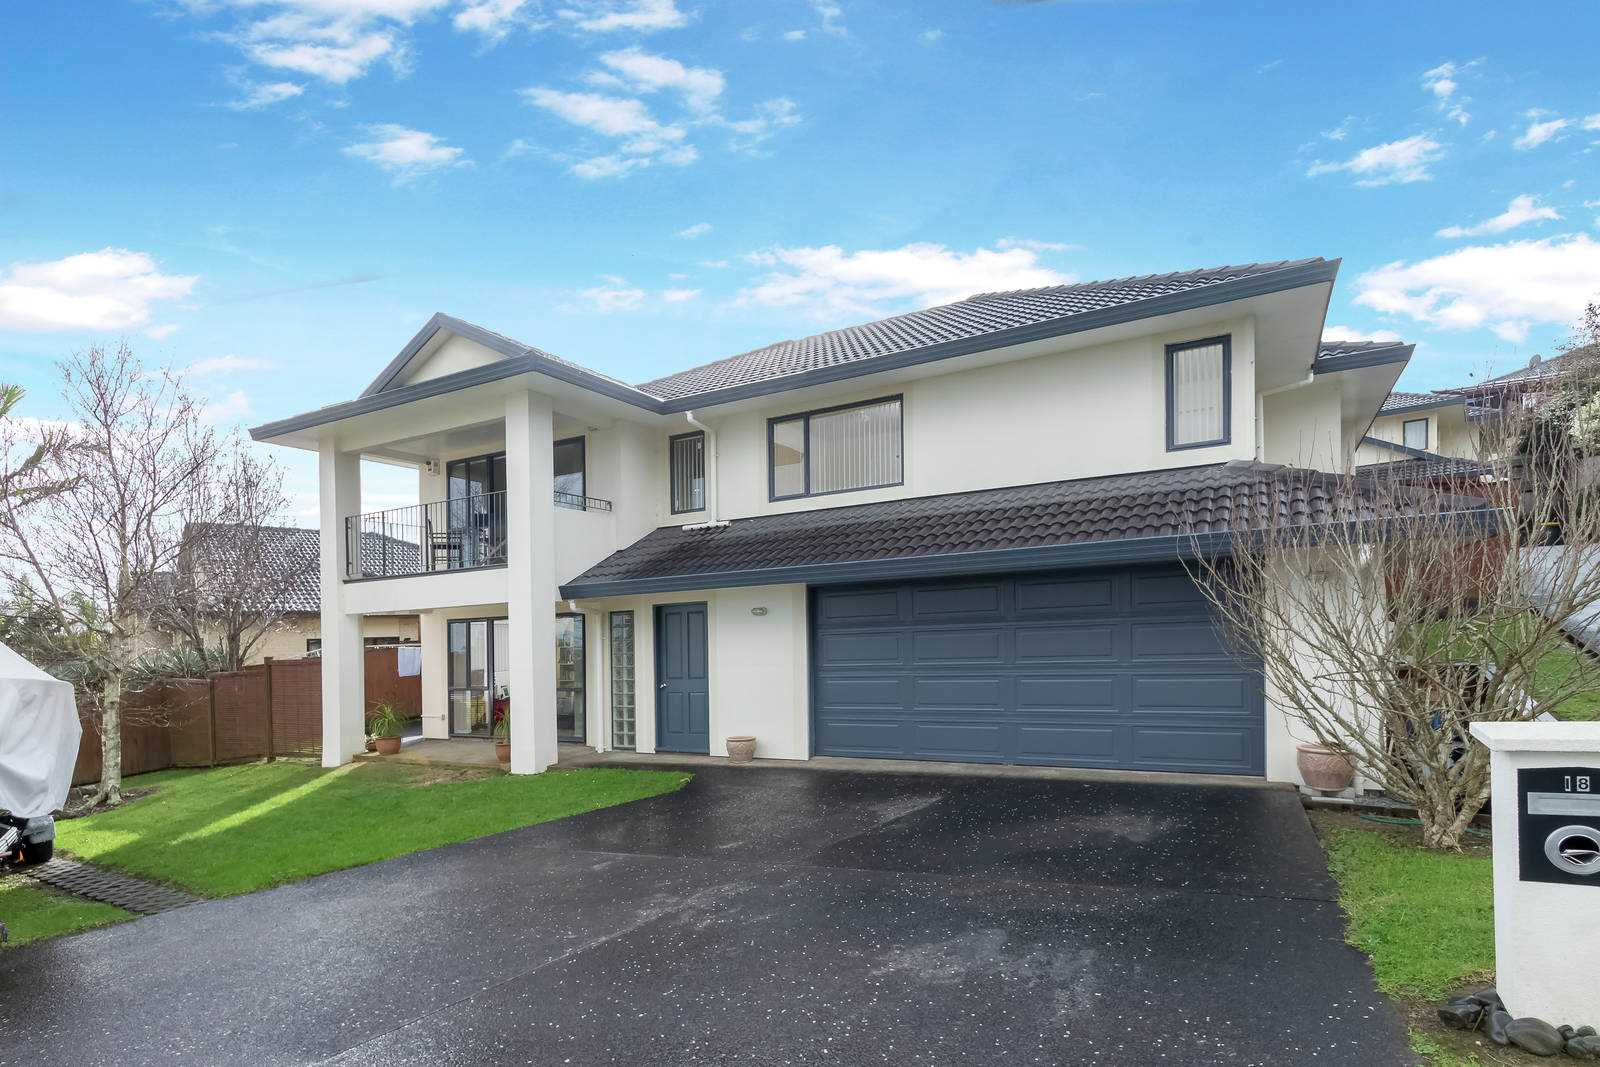 Stunning 3/4 Bedroom Family Home with Views